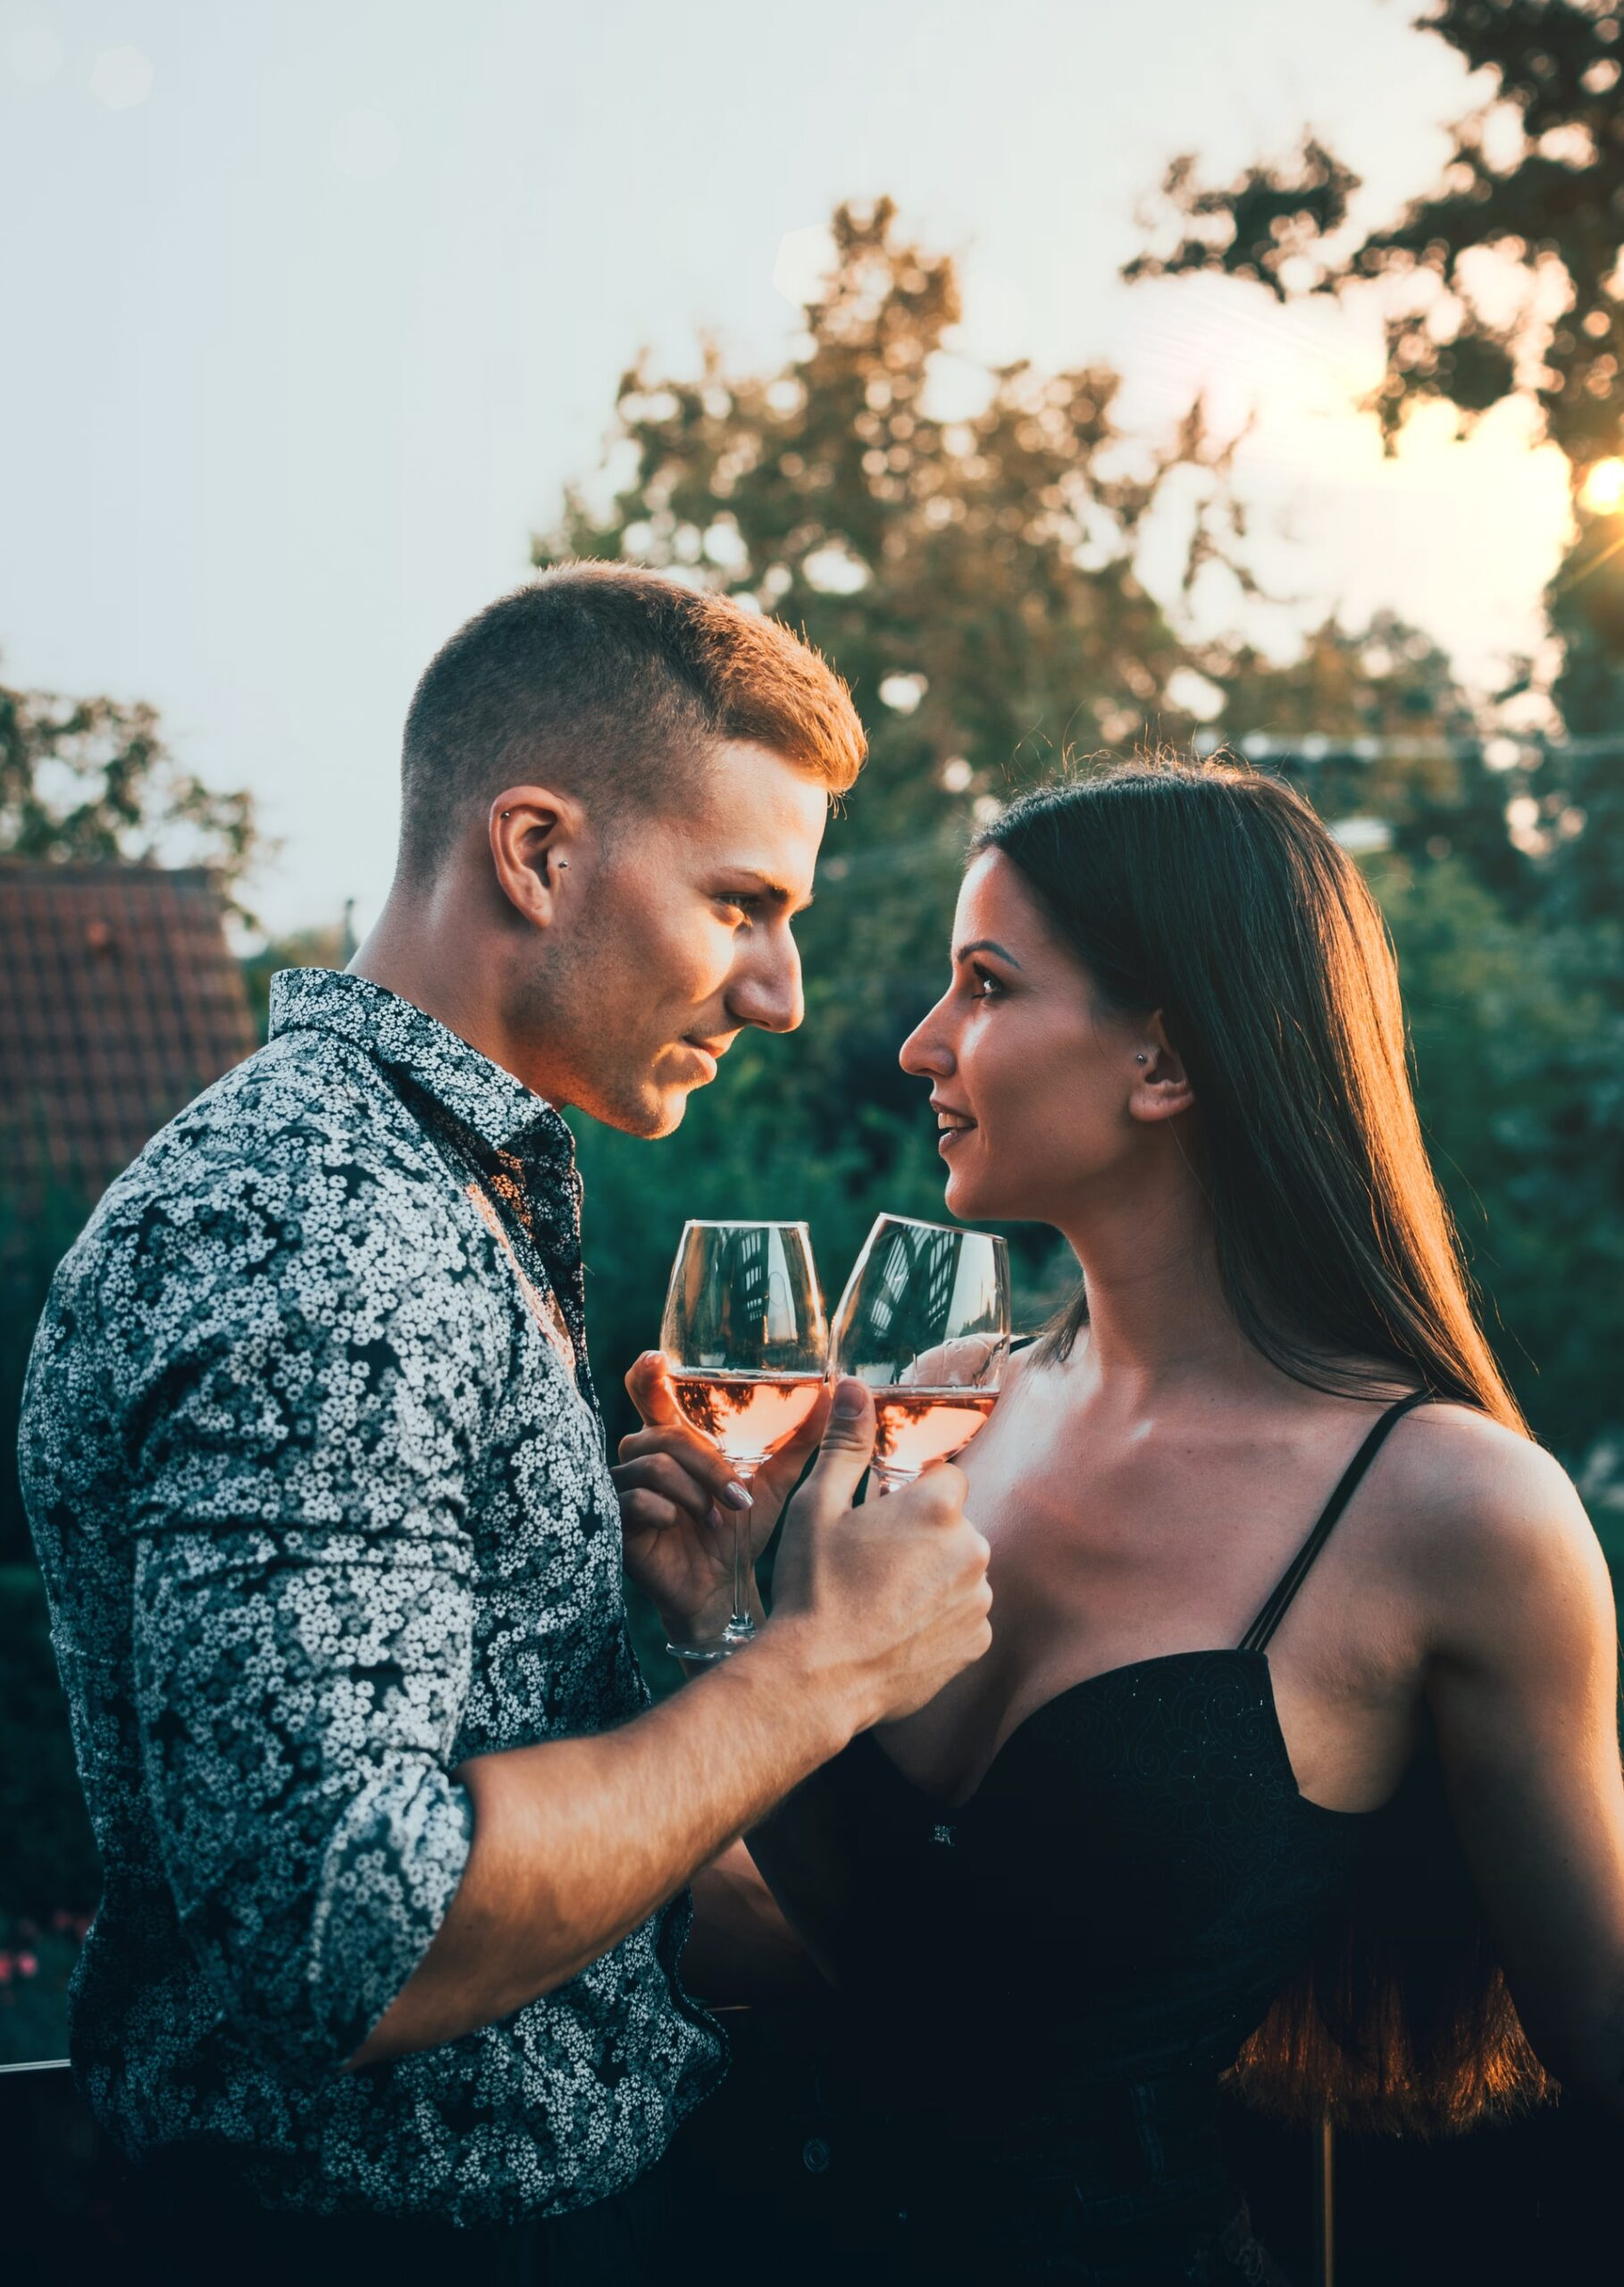 12 best online dating sites and apps